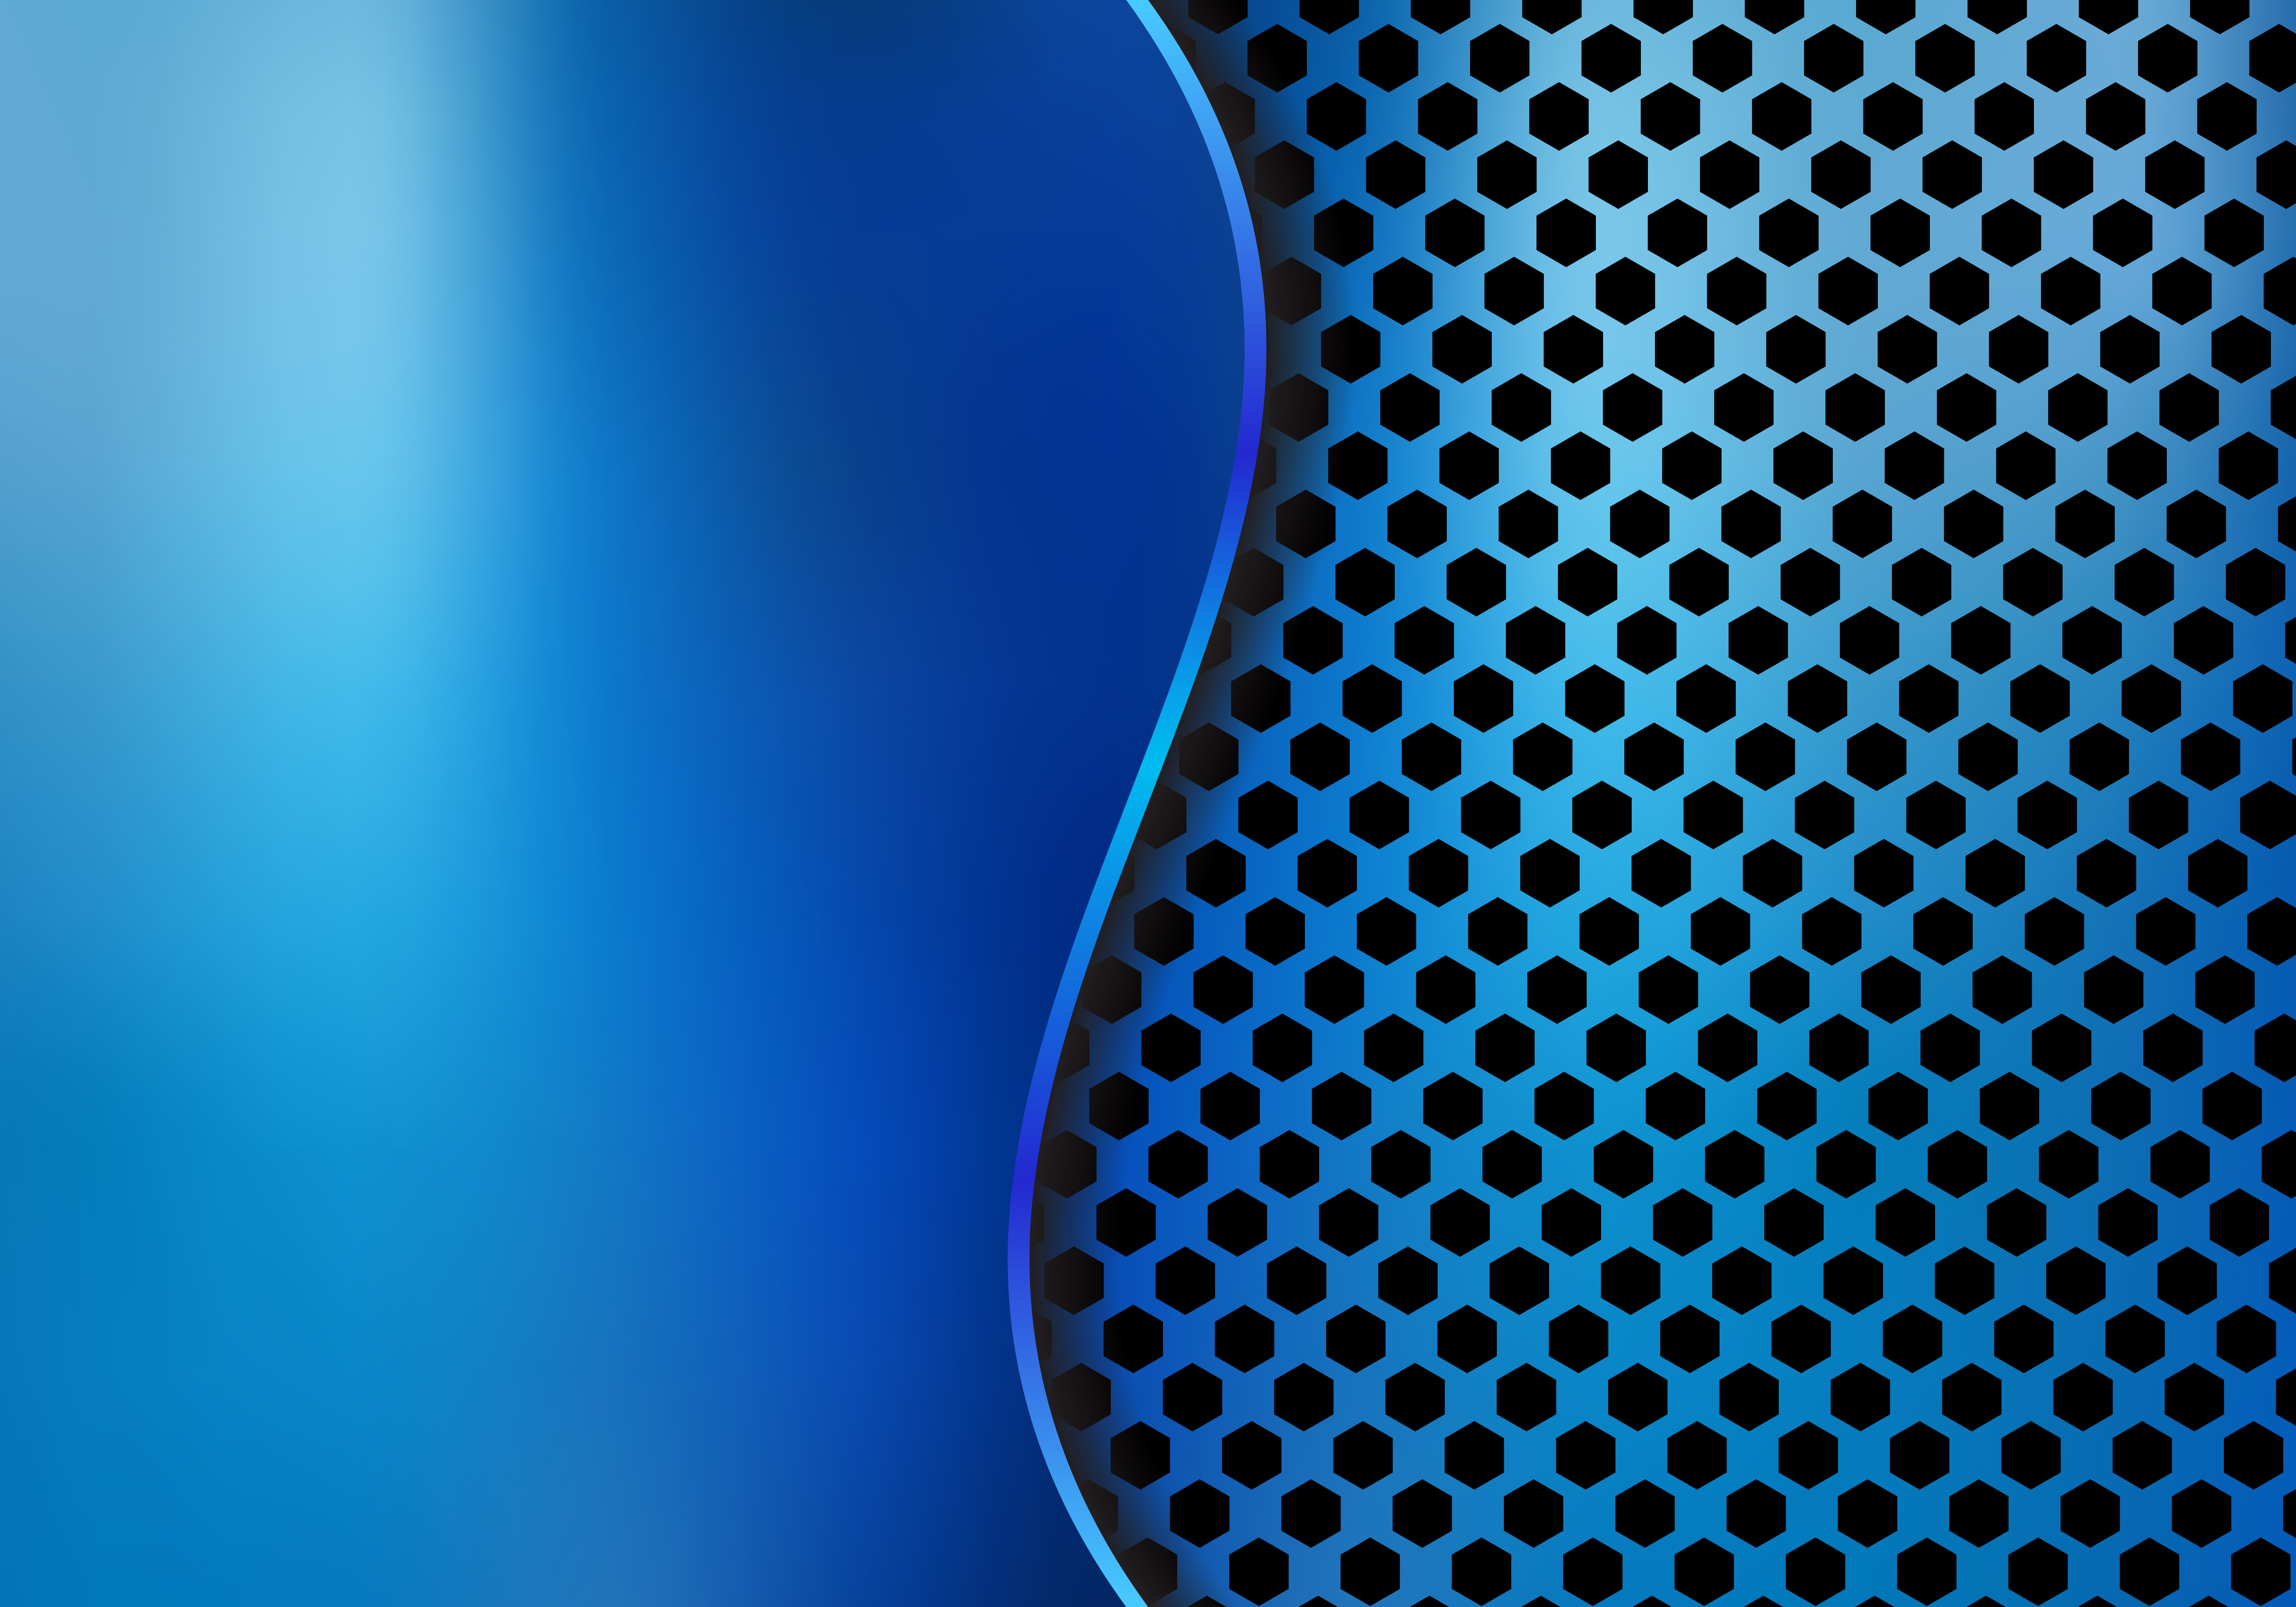 Abstract Blue Metallic Metal Background Made From Hexagon